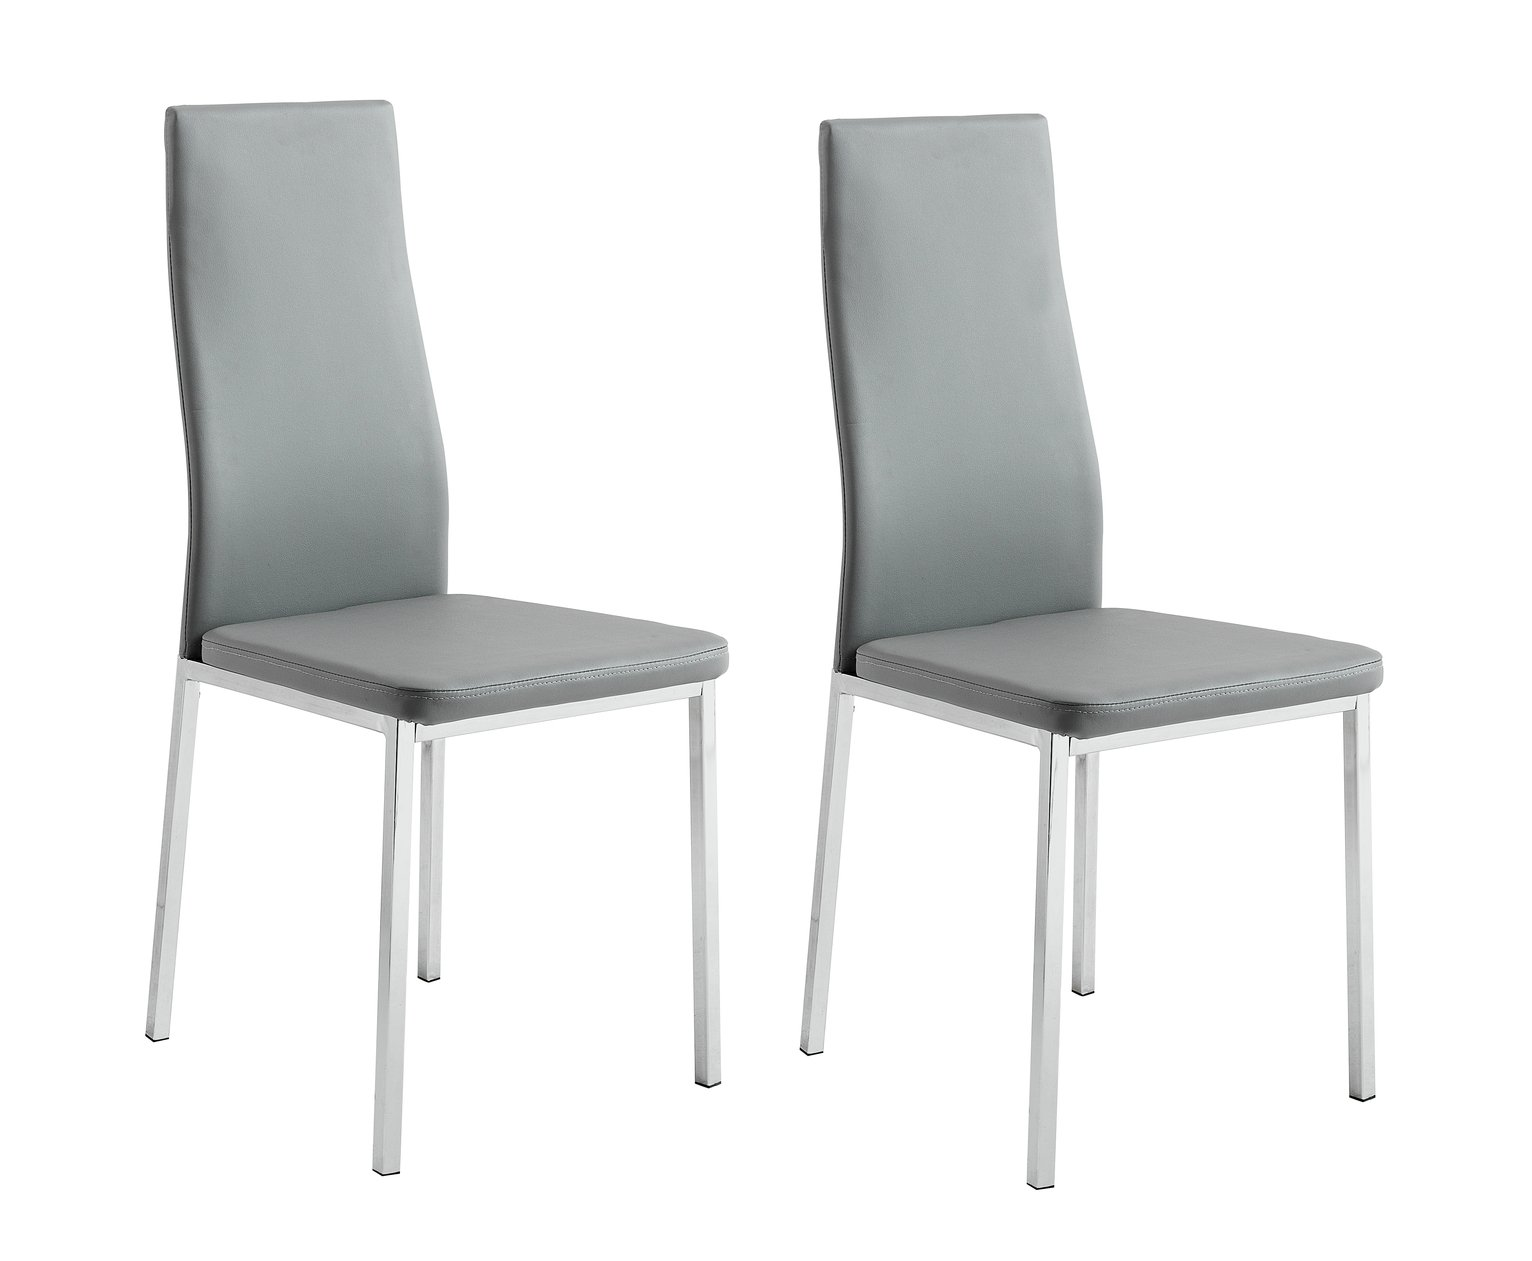 grey dining chairs green bungee chair buy argos home tia pair of chrome and